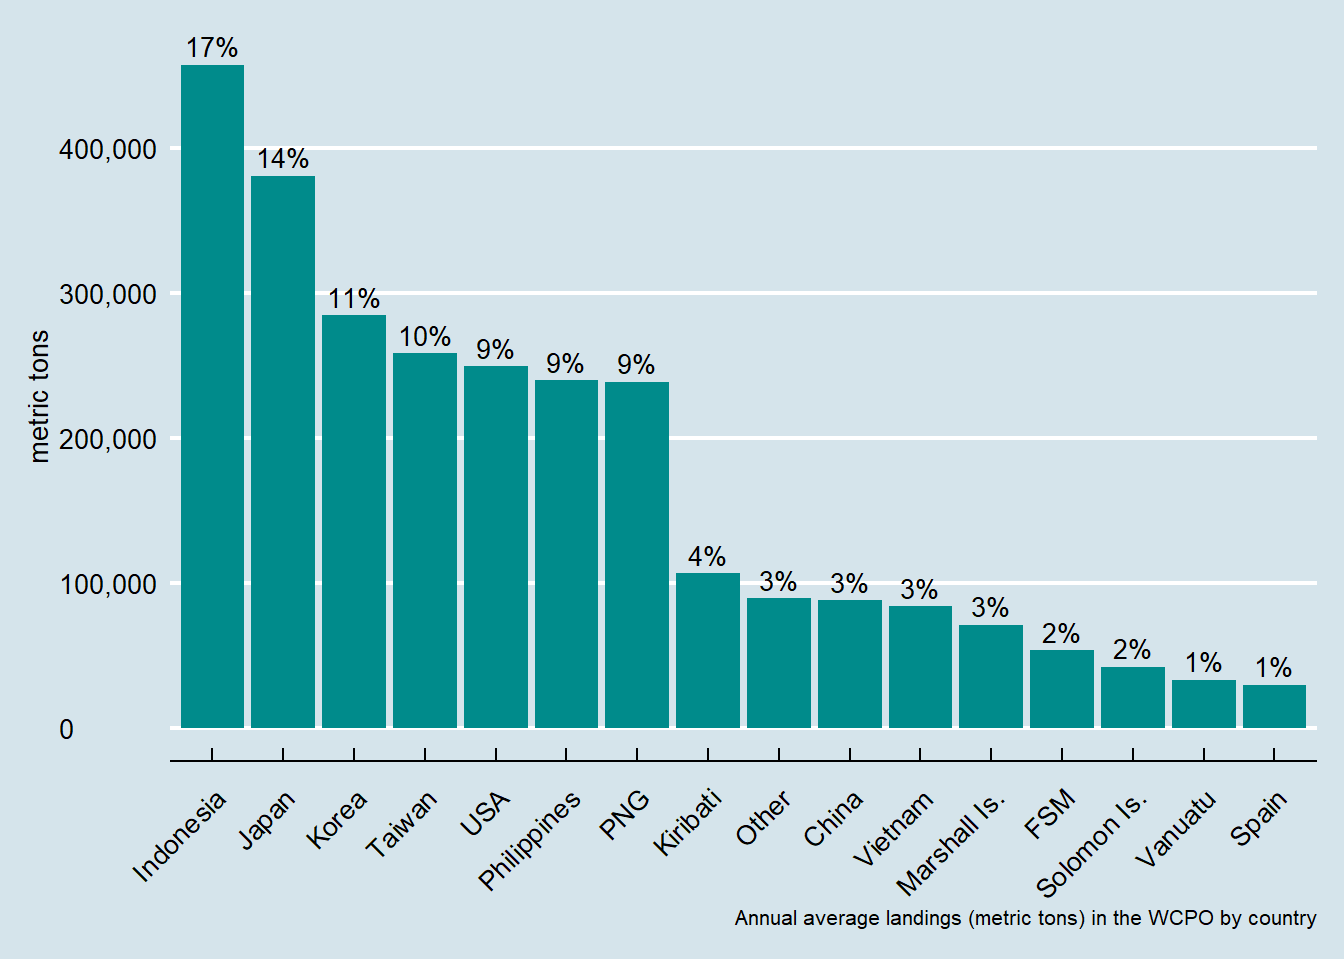 Average annual landings, metric ton, 2009-2018 by country in the Western and Central Pacific Ocean.